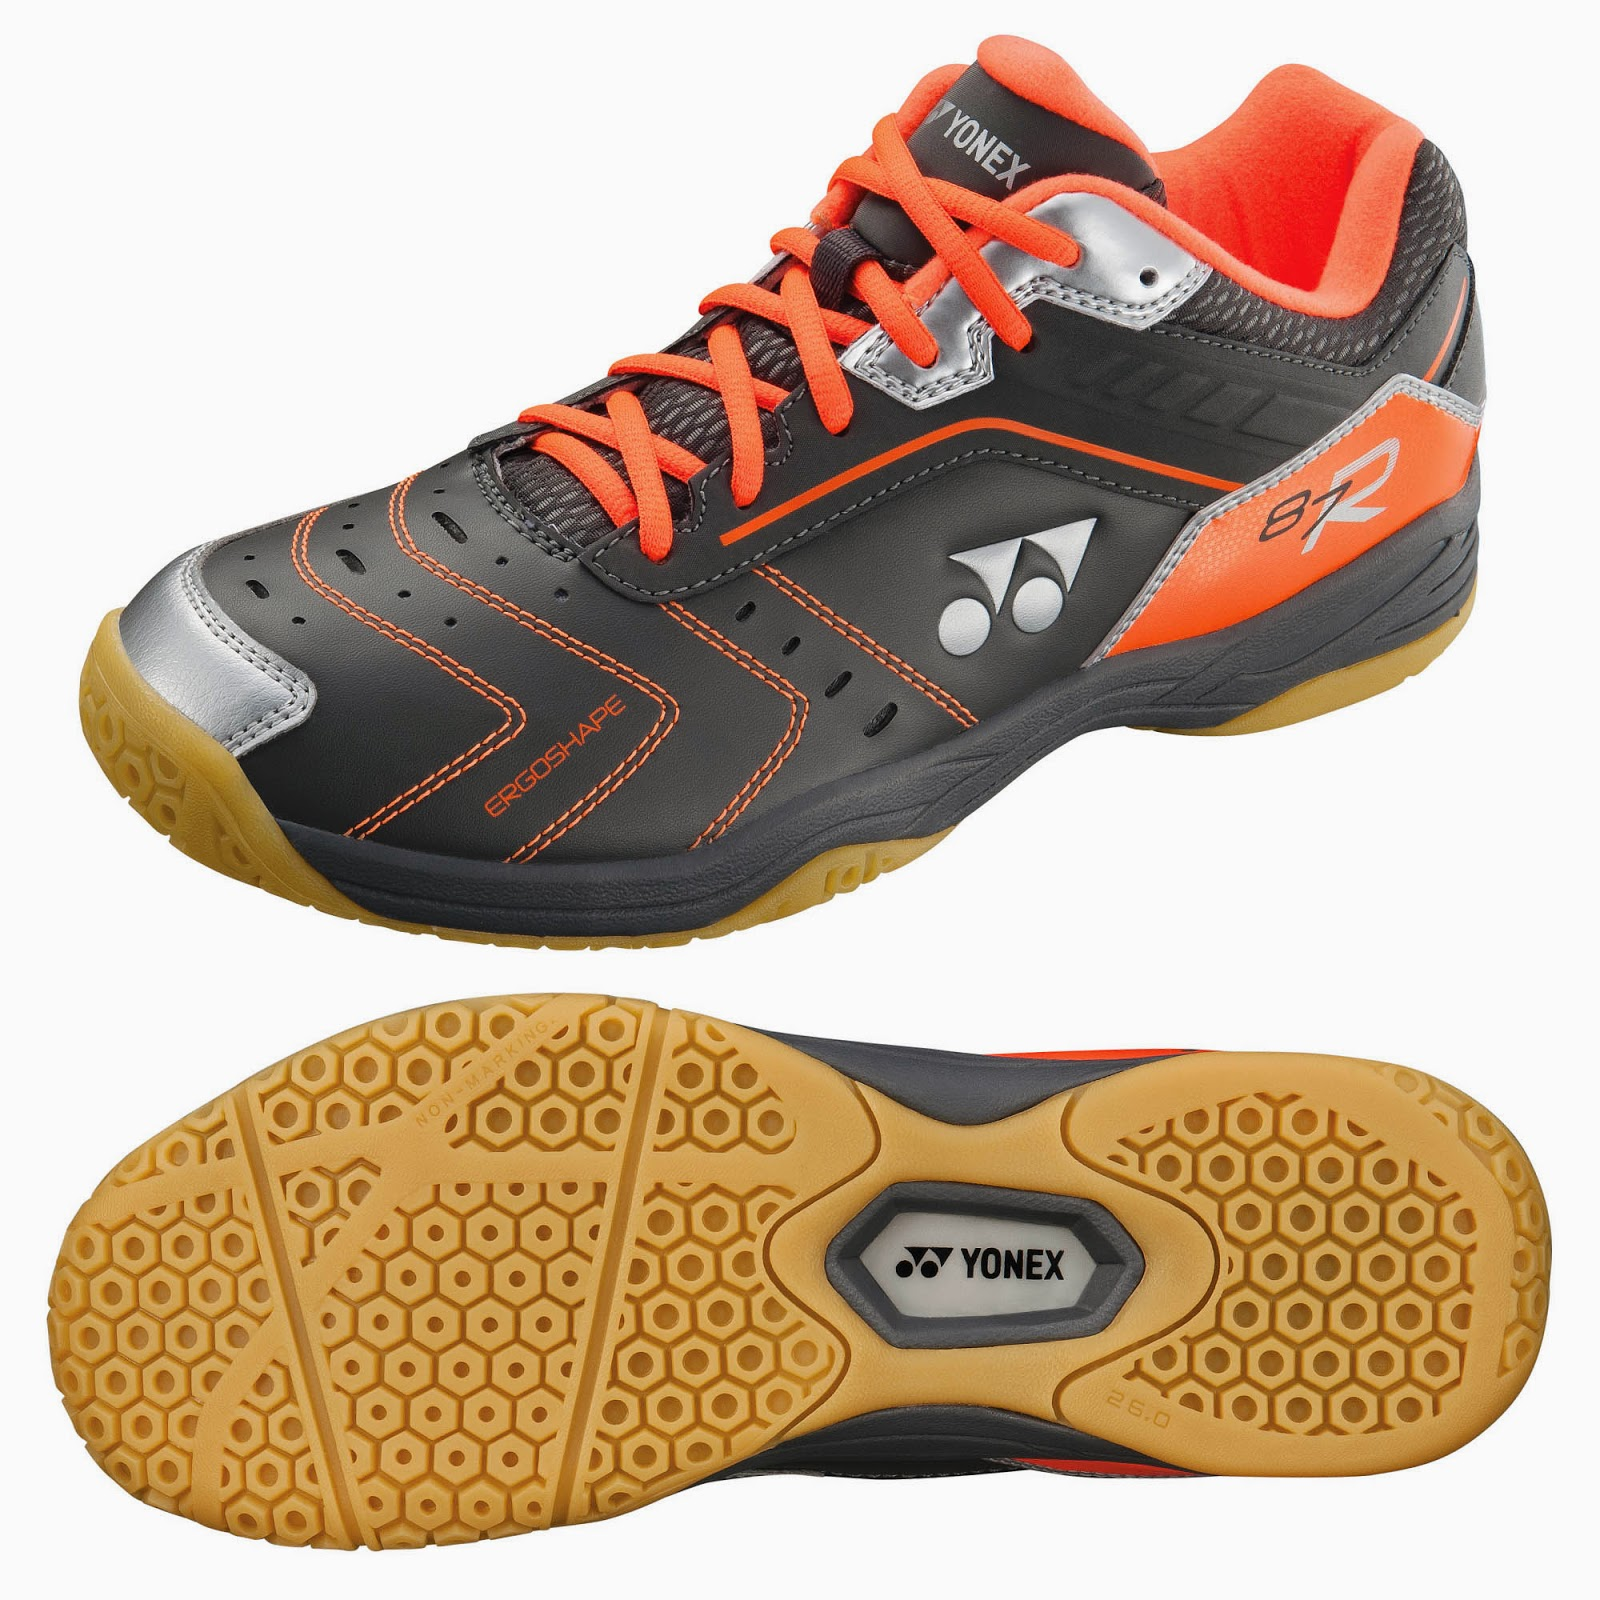 How a Good Pair of Shoes Can Maximise On-court Performance